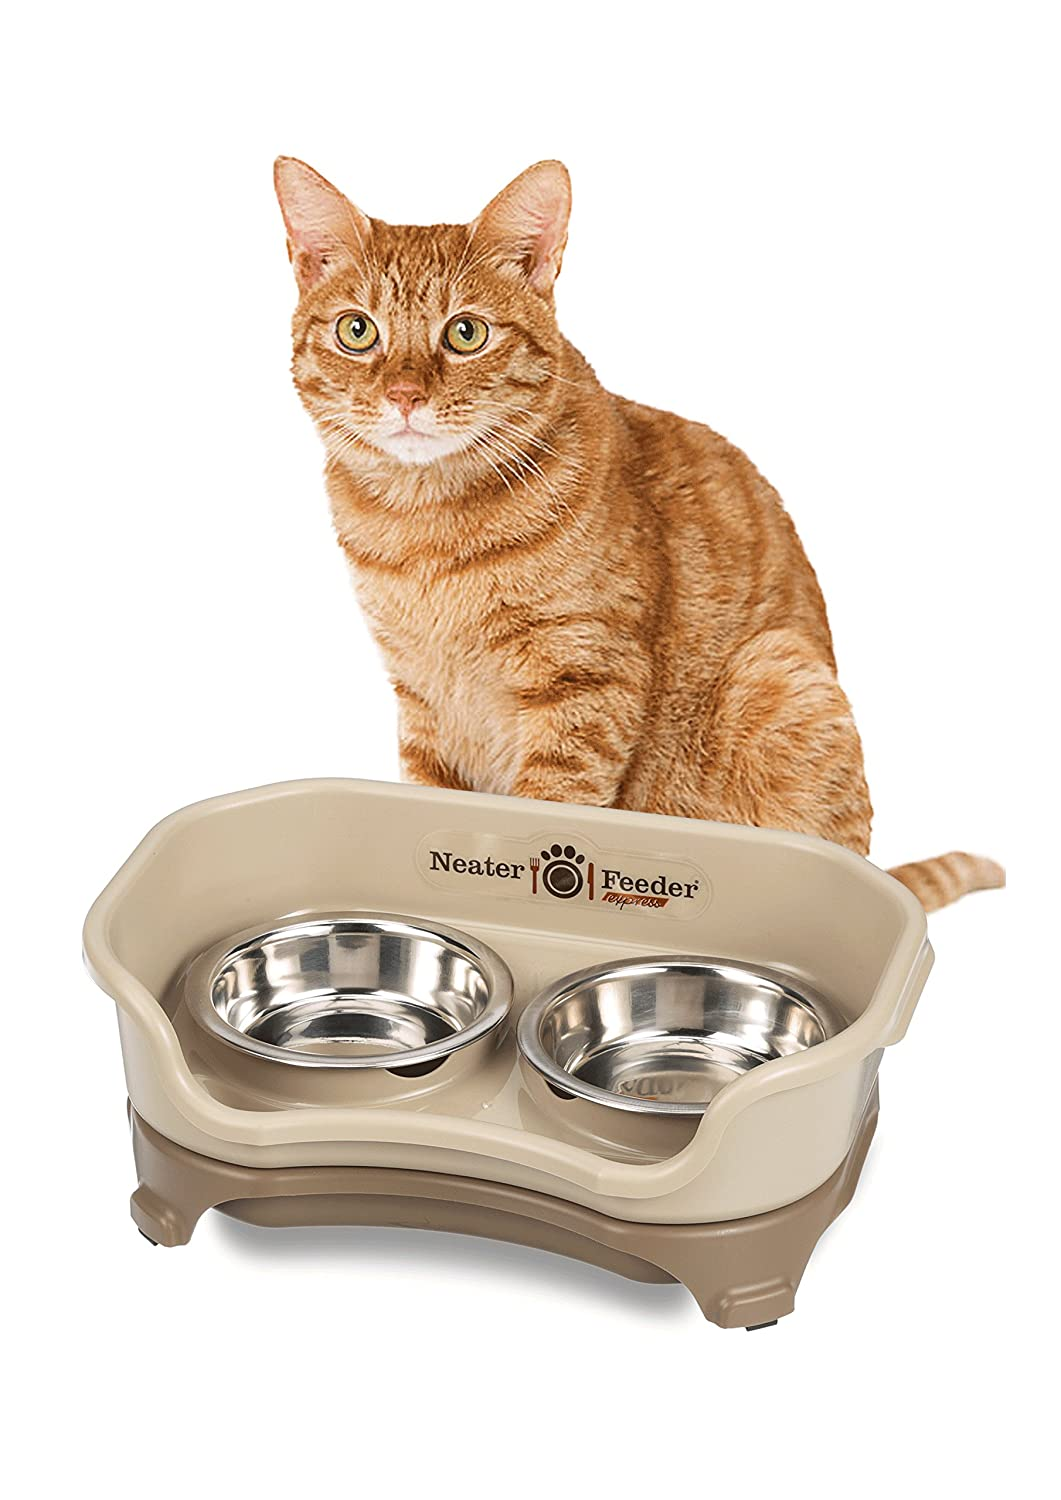 No Bowl Feeding System Cat Brand New In Box Dishes, Feeders & Fountains Cat Supplies